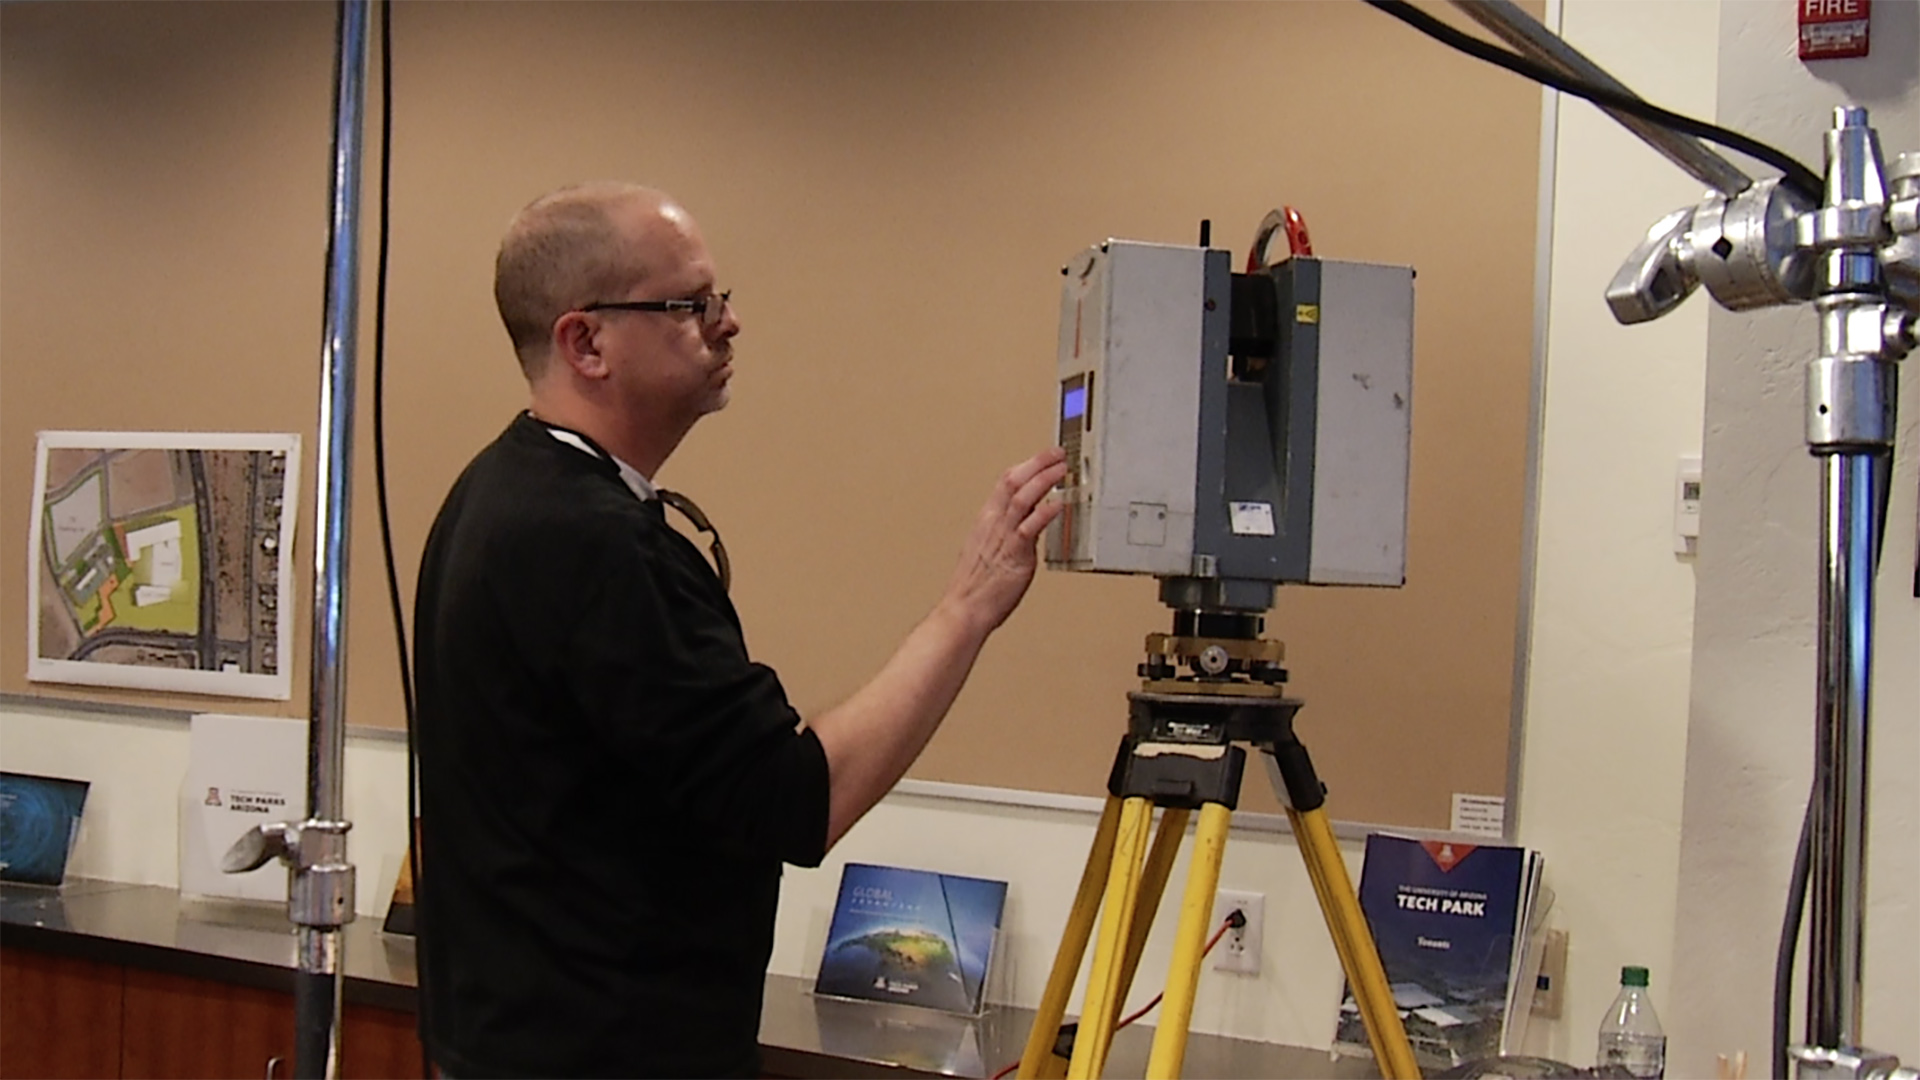 An employee of Darling Geomatics conducts a 3-D scan of a room at the Tech Park on Rita Road.